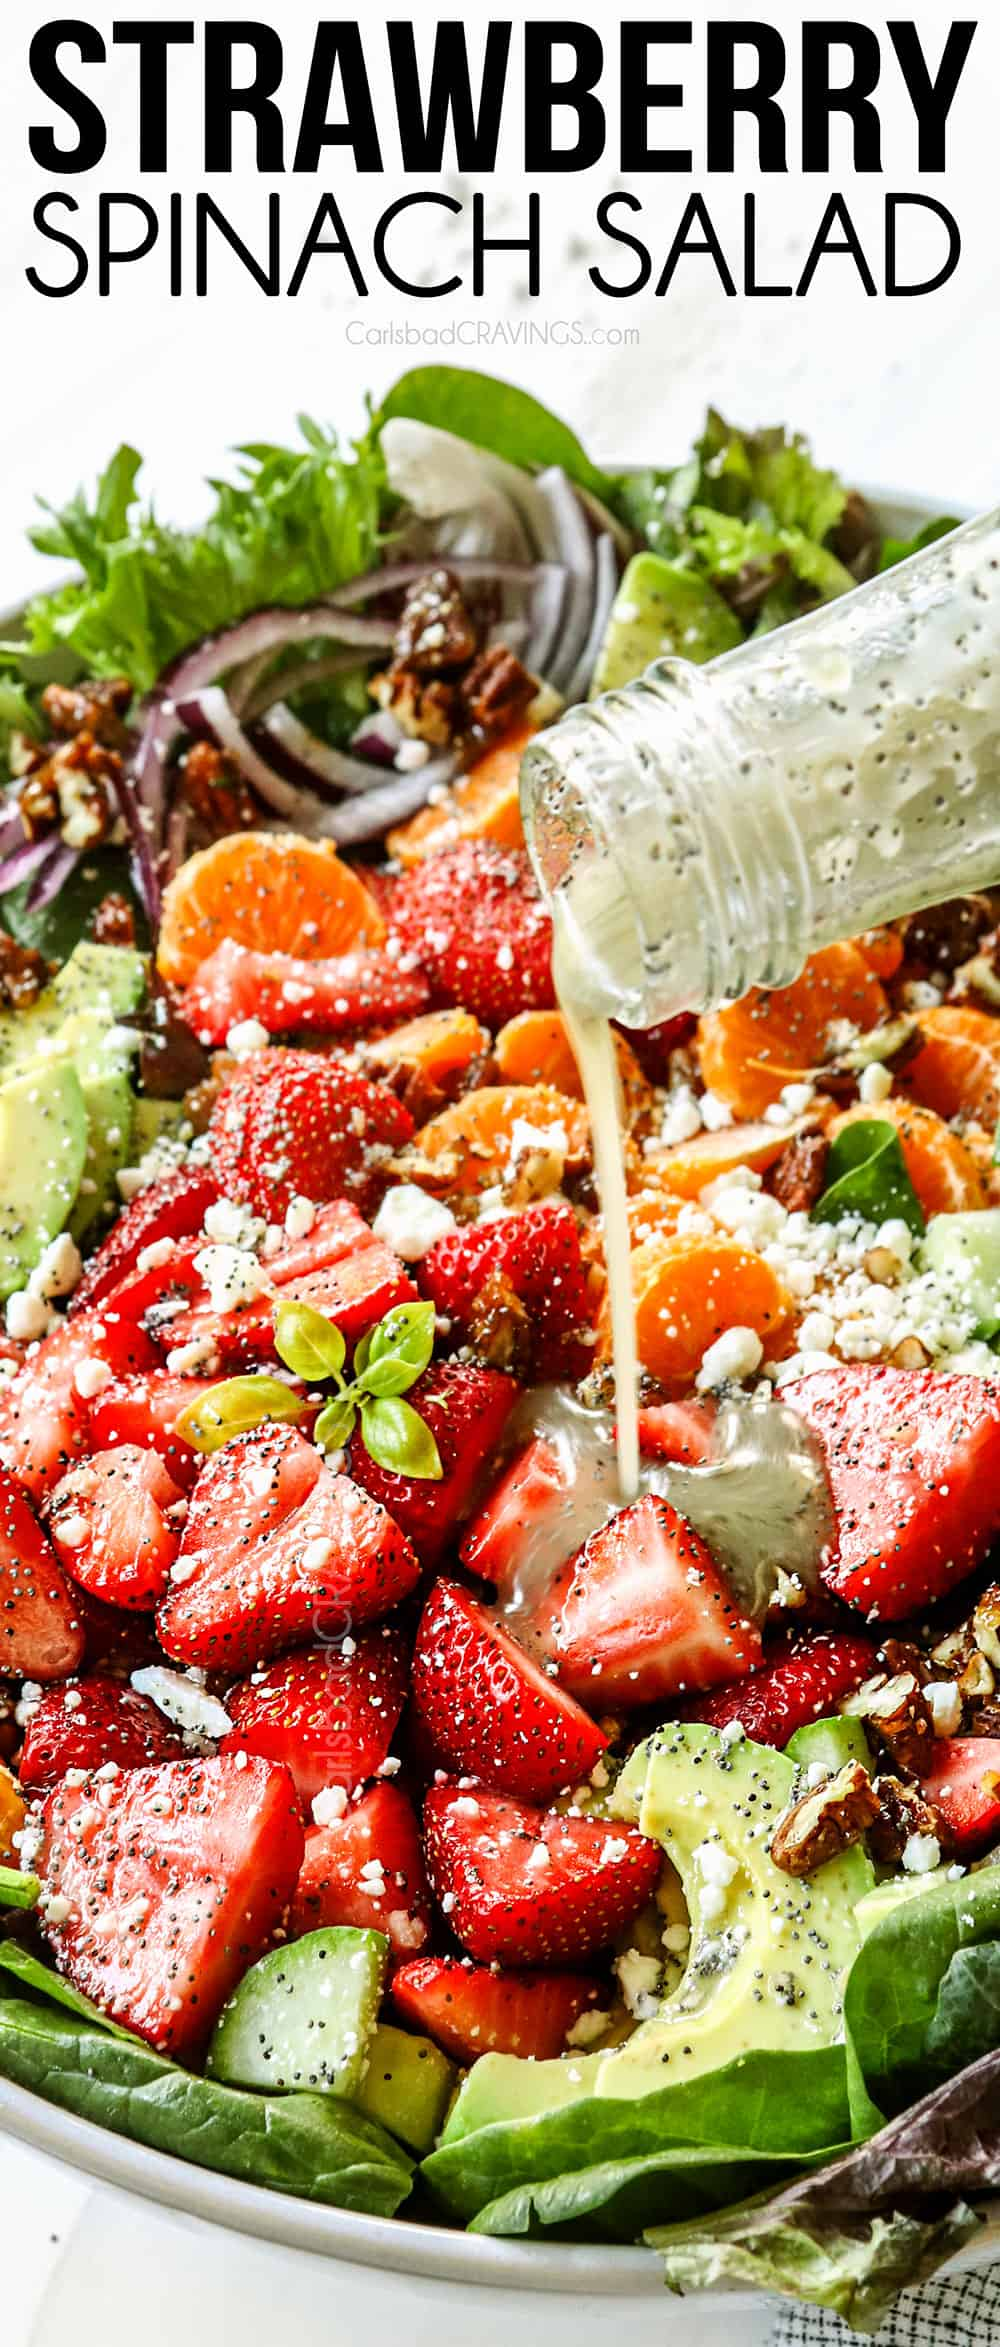 showing how to make strawberry spinach salad by drizzling with strawberry spinach salad dressing